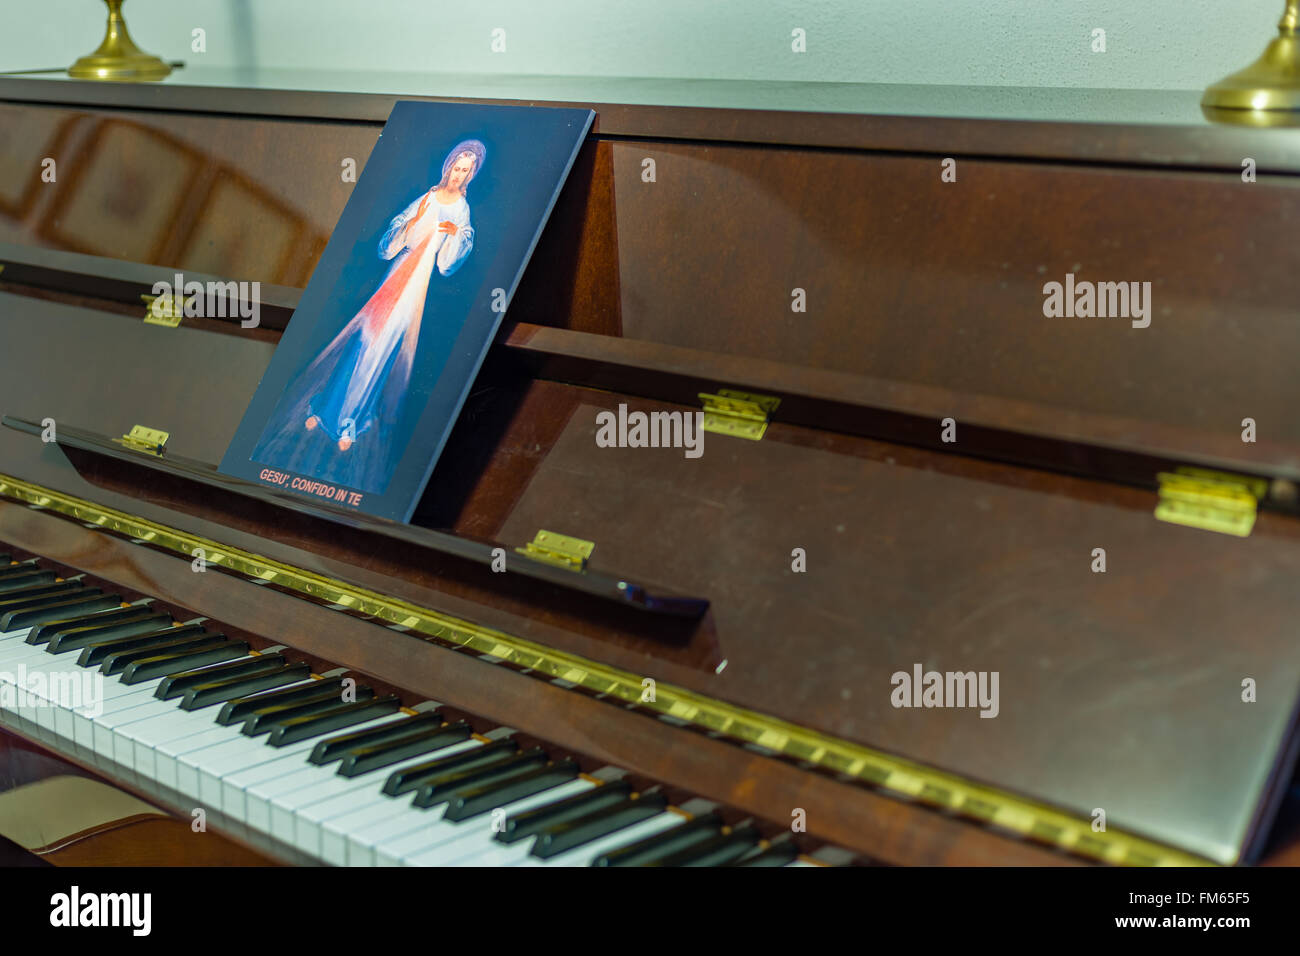 the Merciful Jesus icon on a piano in place of scores